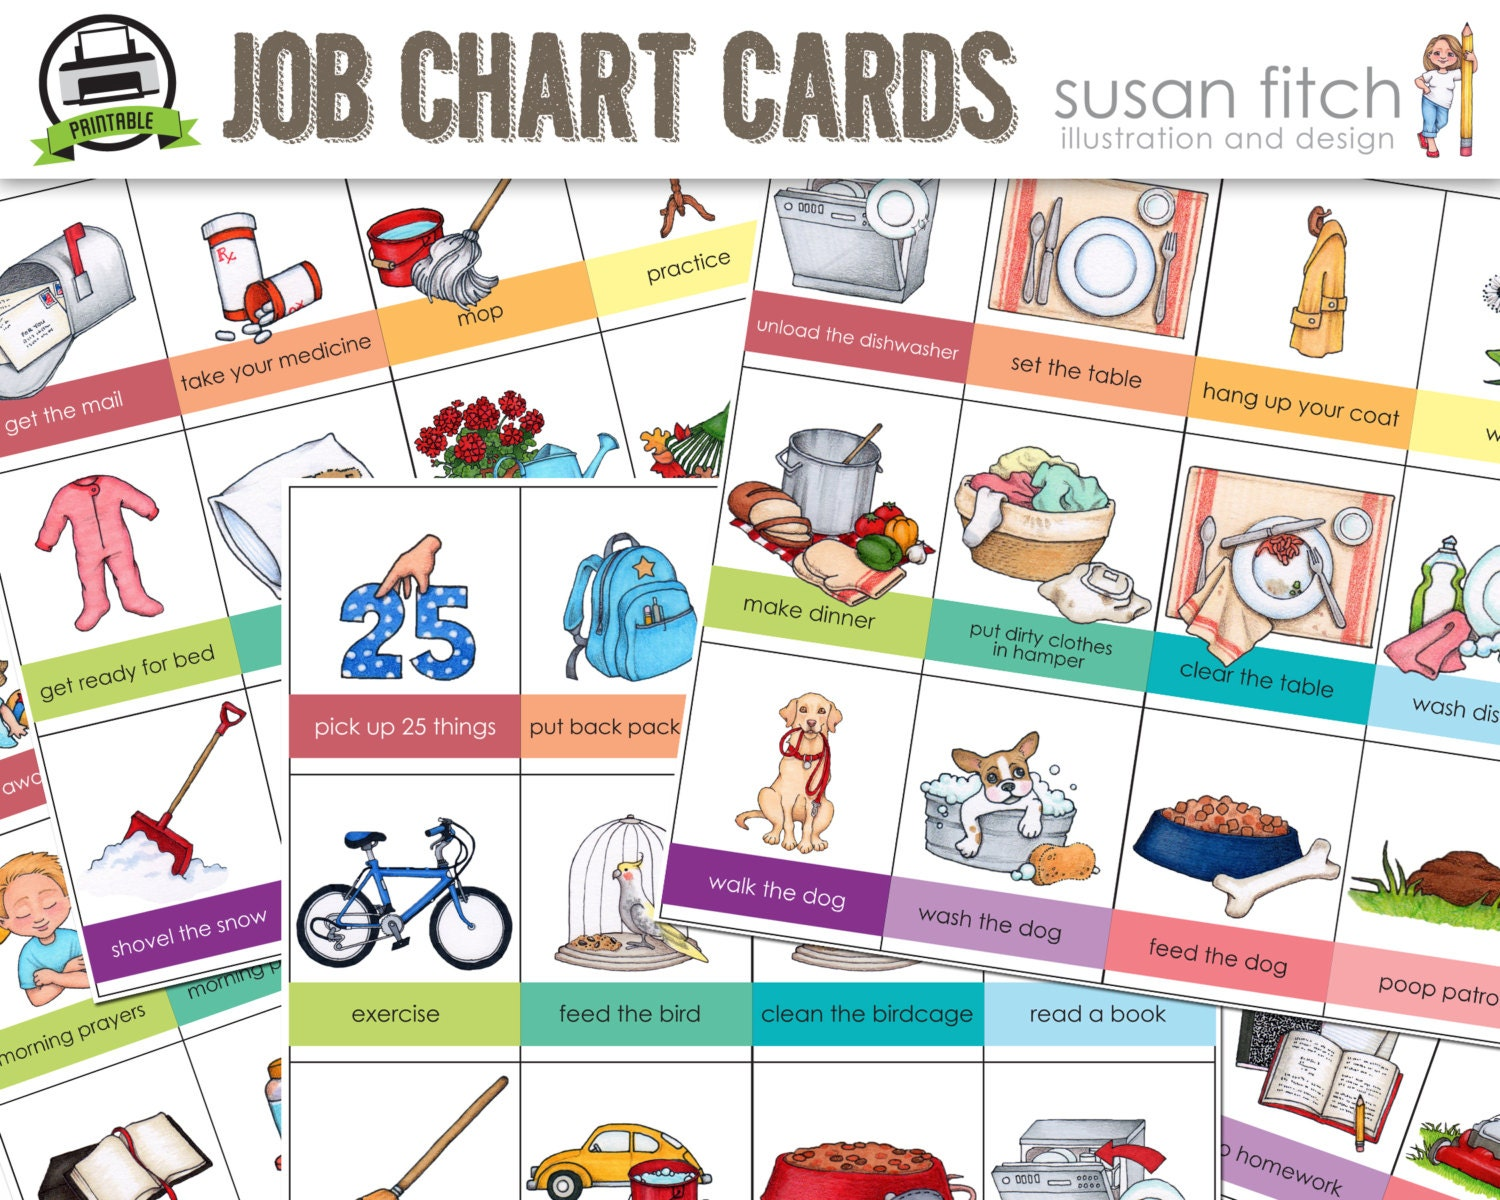 Resource image regarding printable chore cards